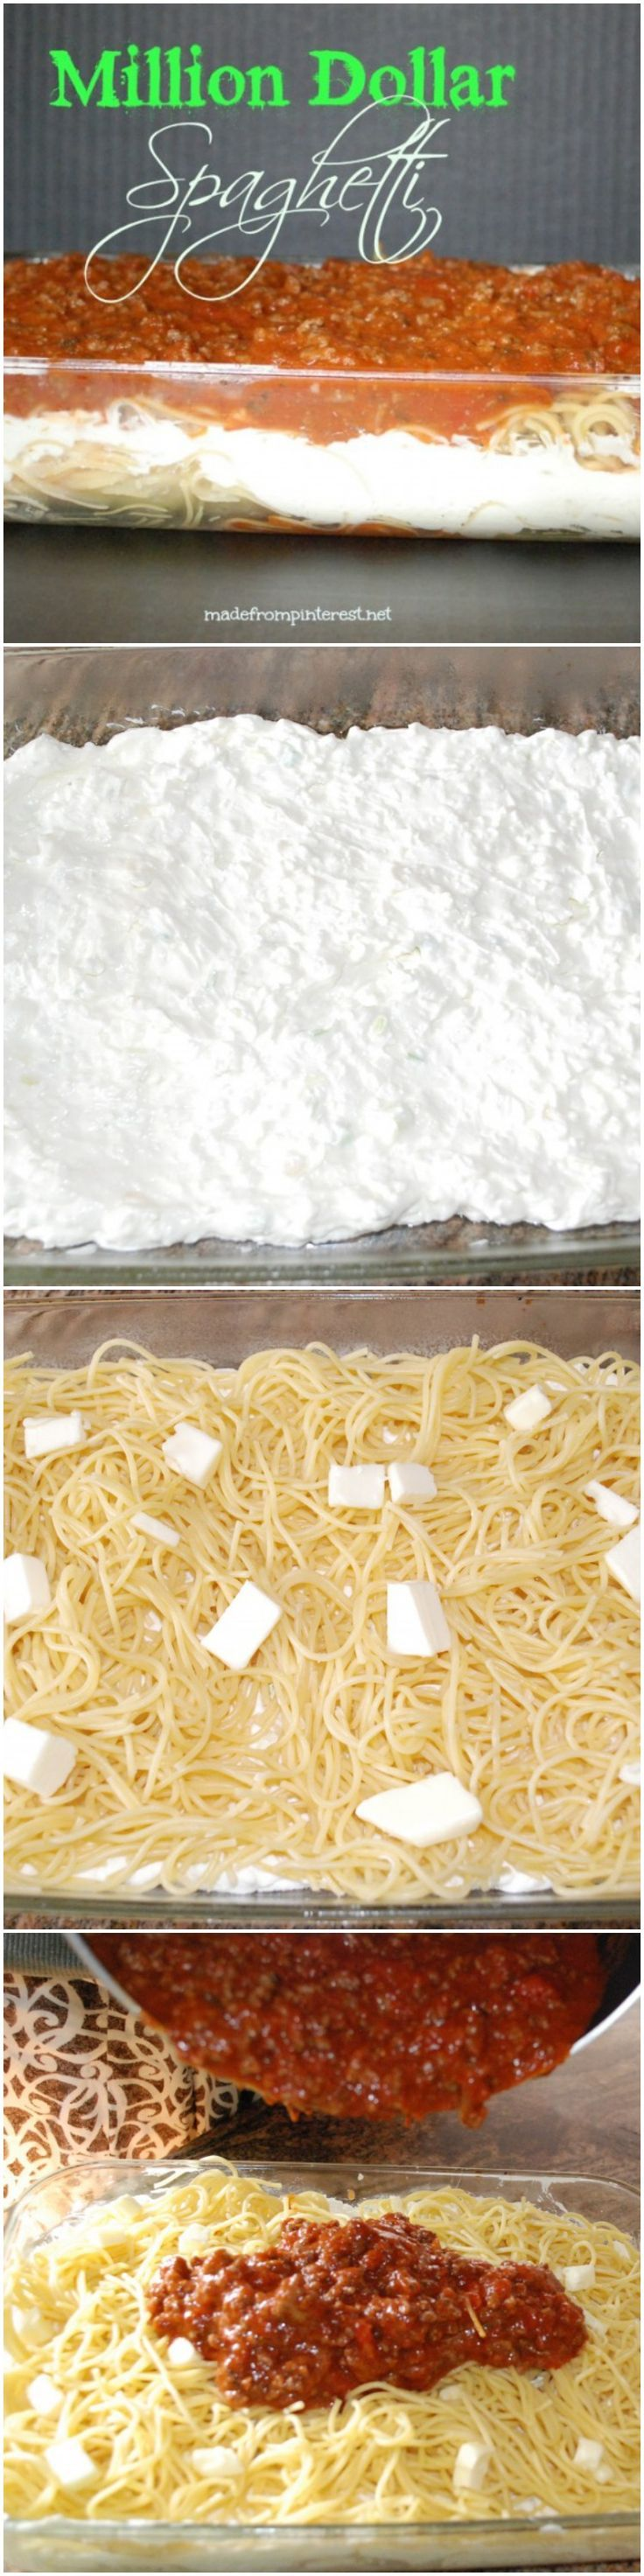 When all else fails - make spaghetti. But not just any spaghetti, make Million Dollar Spaghetti and your family will think you slaved in the kitchen all day. It will be our little secret. madefrompinterest.net  Pinned over 156,000 times.